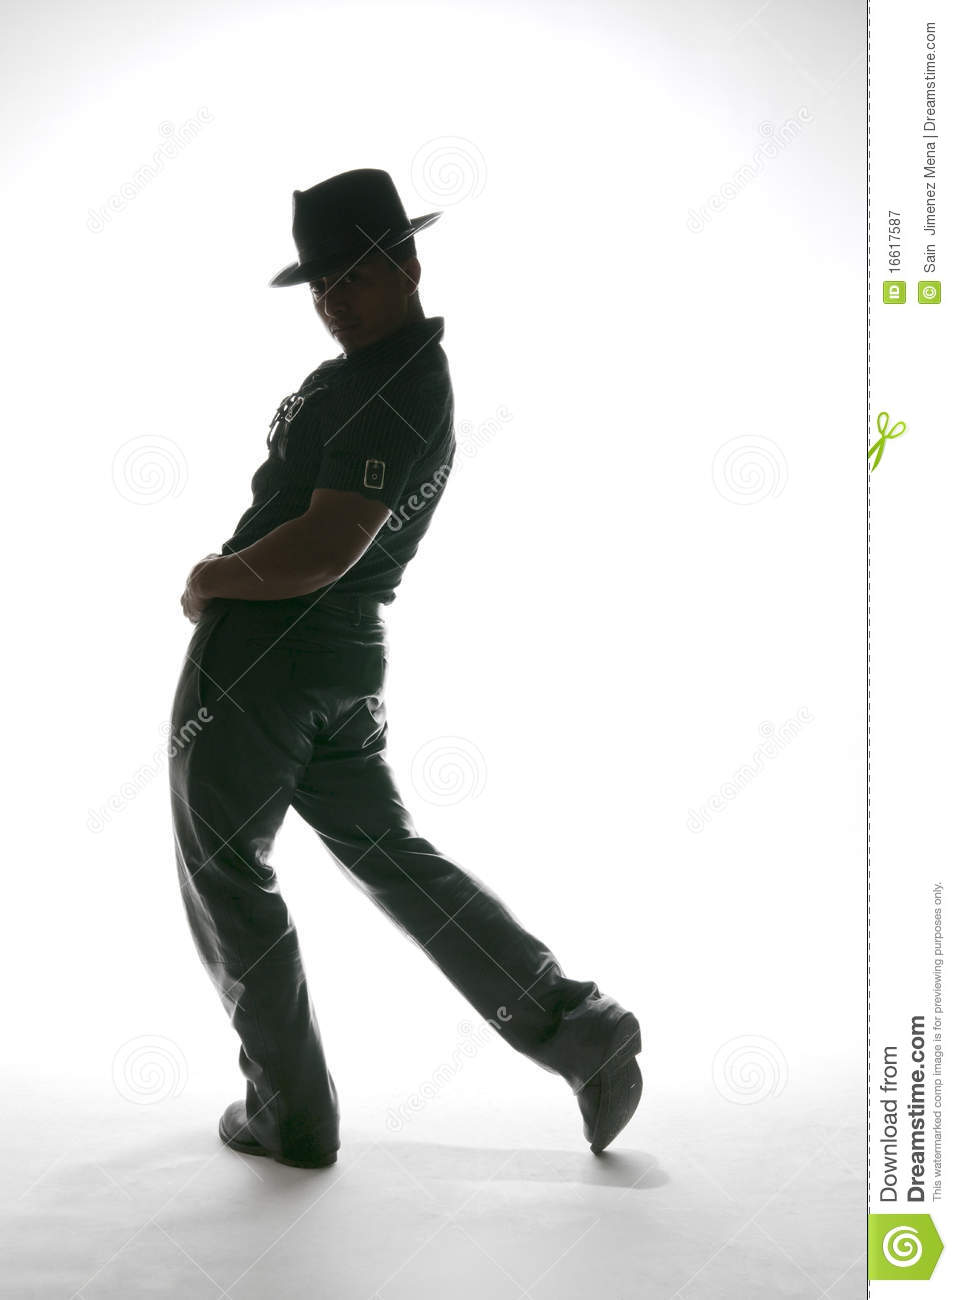 Western Dancing Step Royalty Free Stock Photography - Image: 16617587